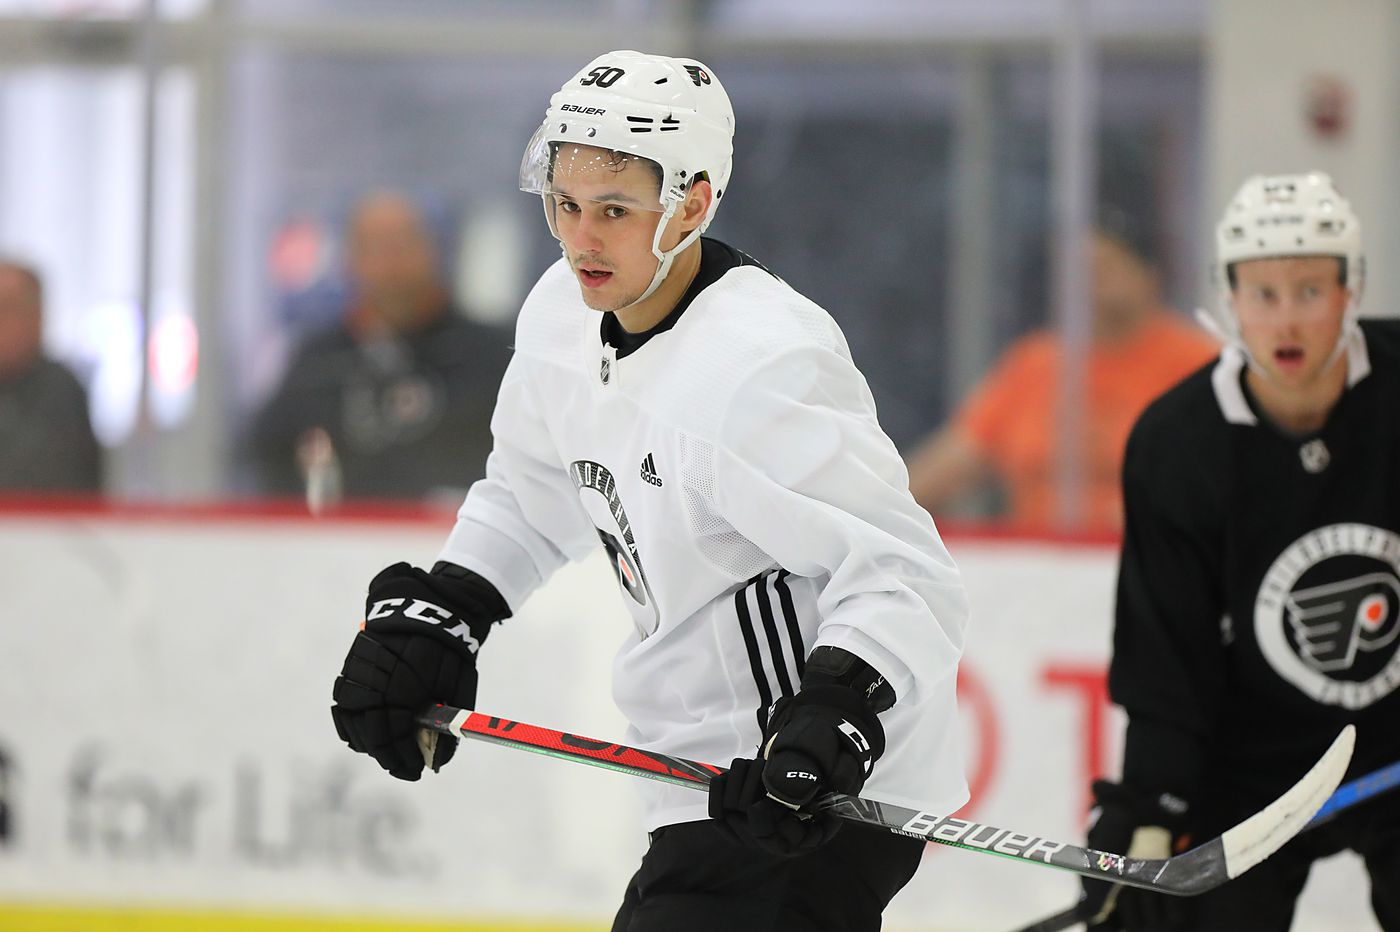 Flyers rookie winger German Rubtsov, a 2016 first-round draft pick, making case with two-way play